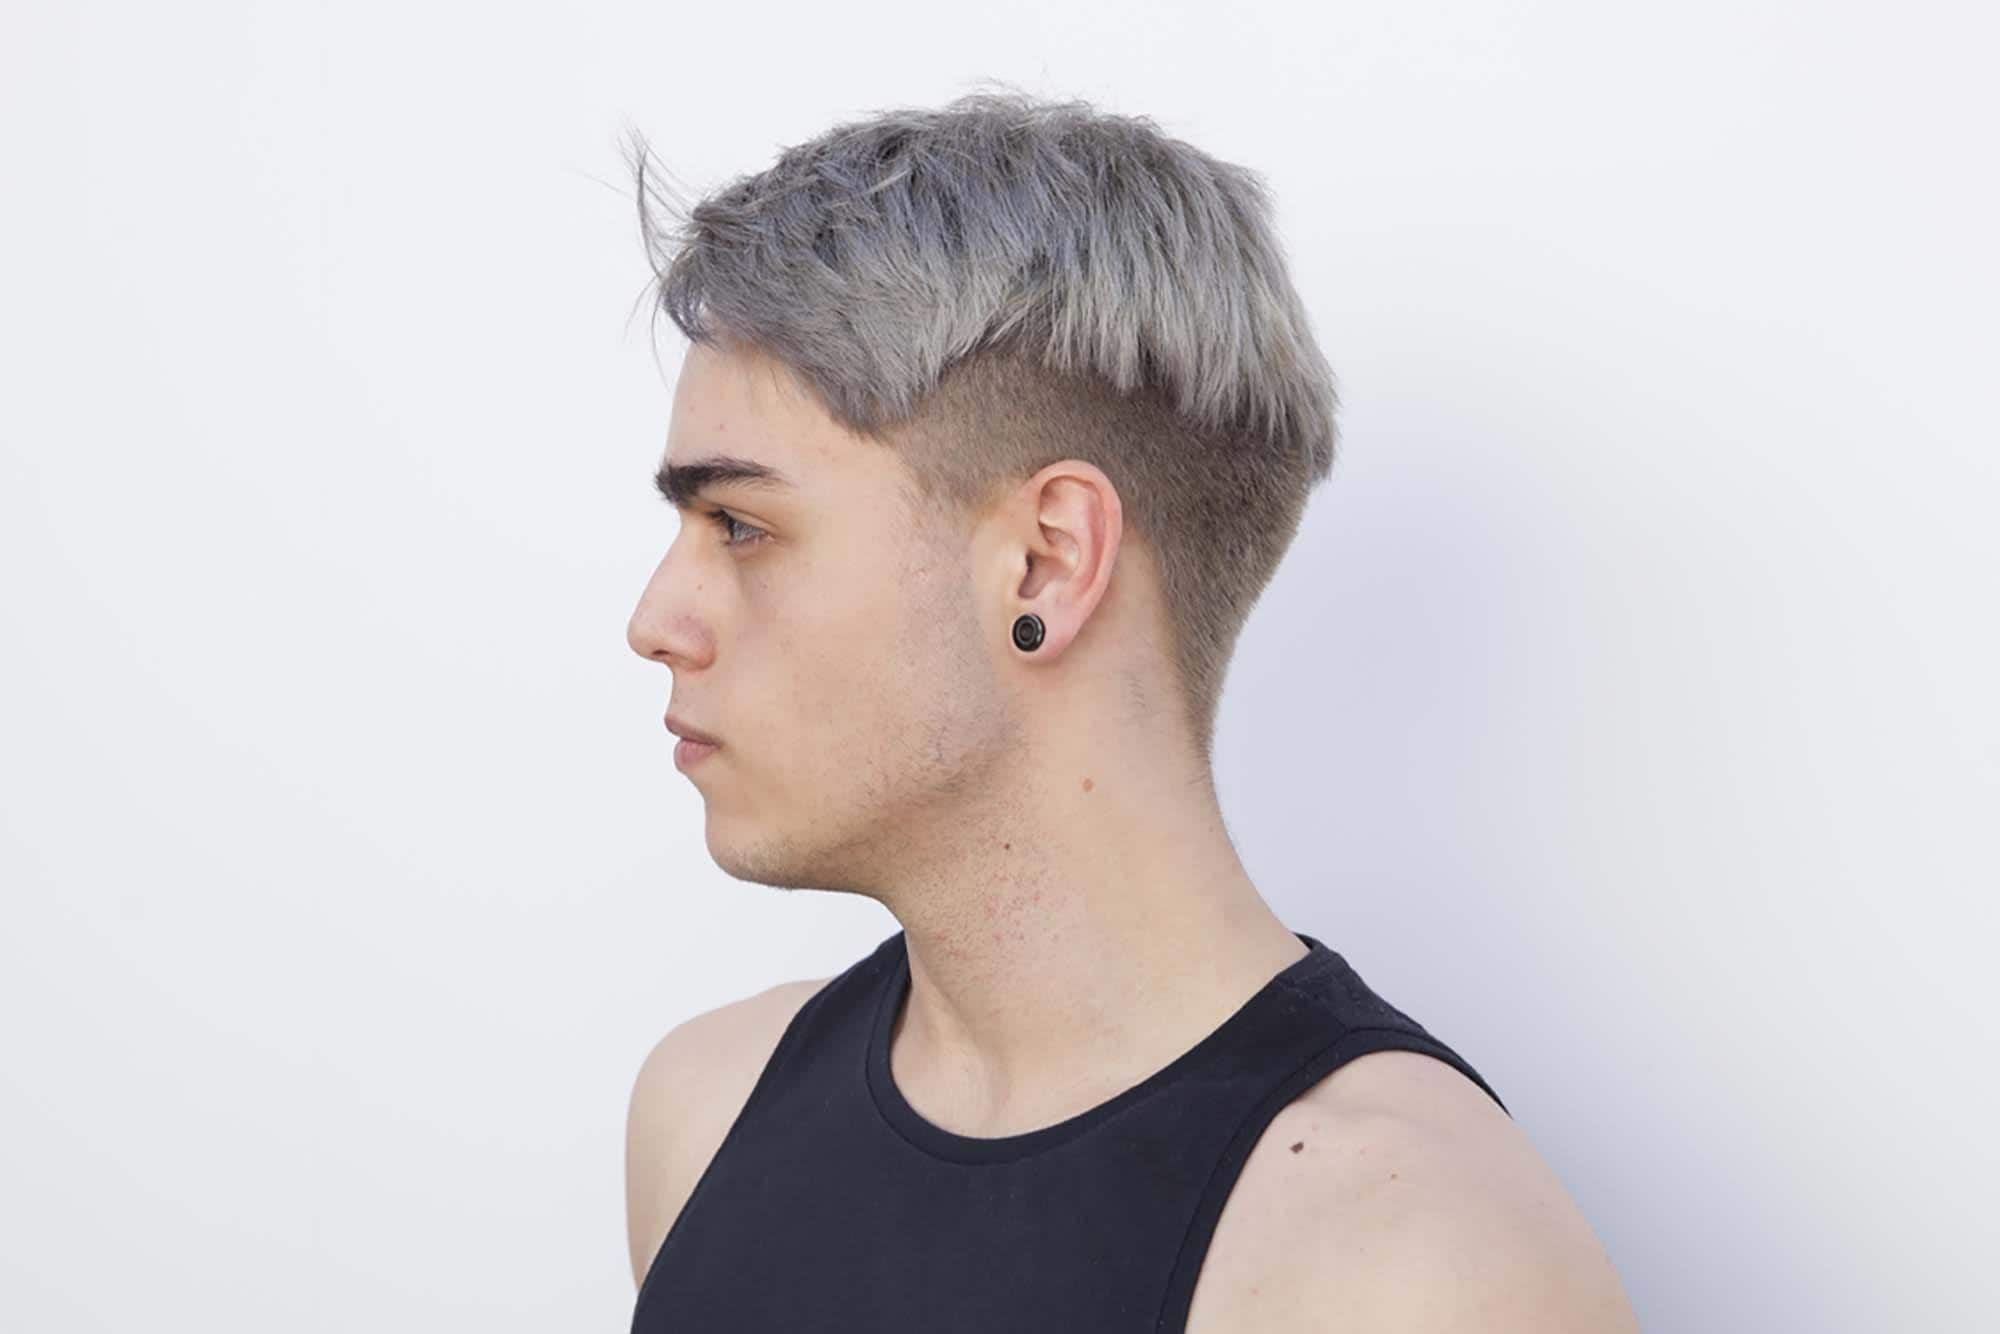 low-key undercut shaved sides hairstyles mens